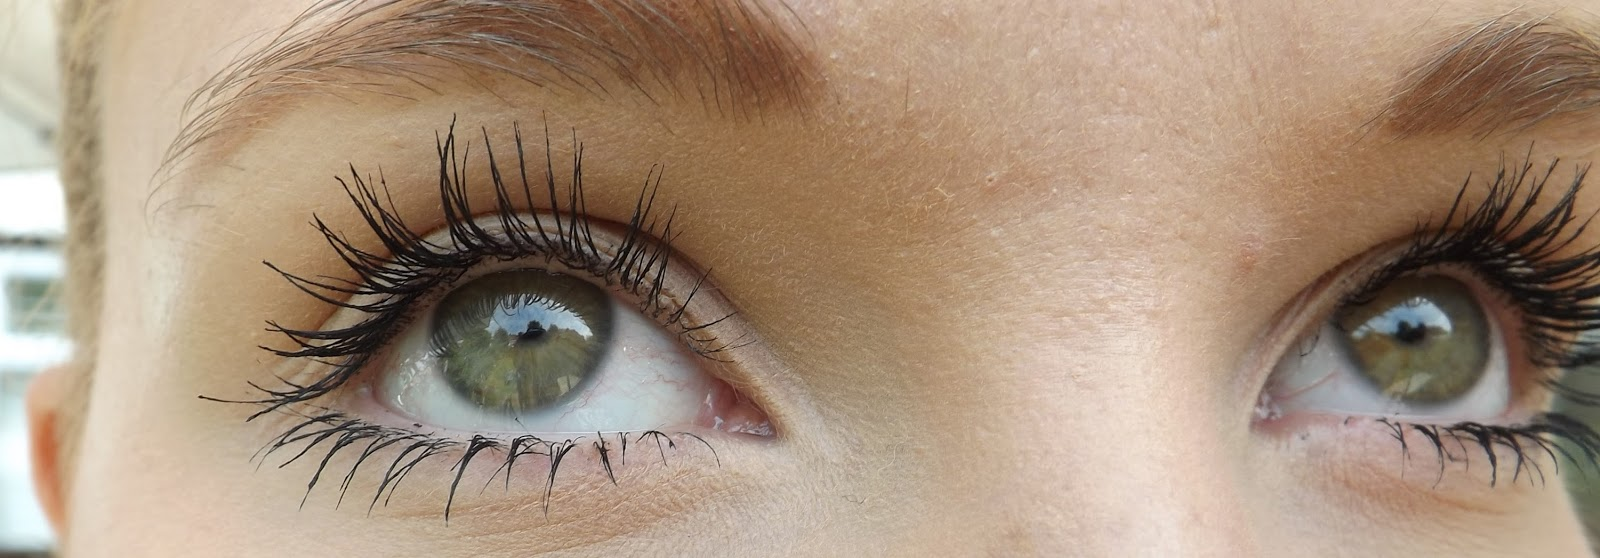 803ed71f1c1 What is your favourite mascara? What do you think of Big Fatty mascara?